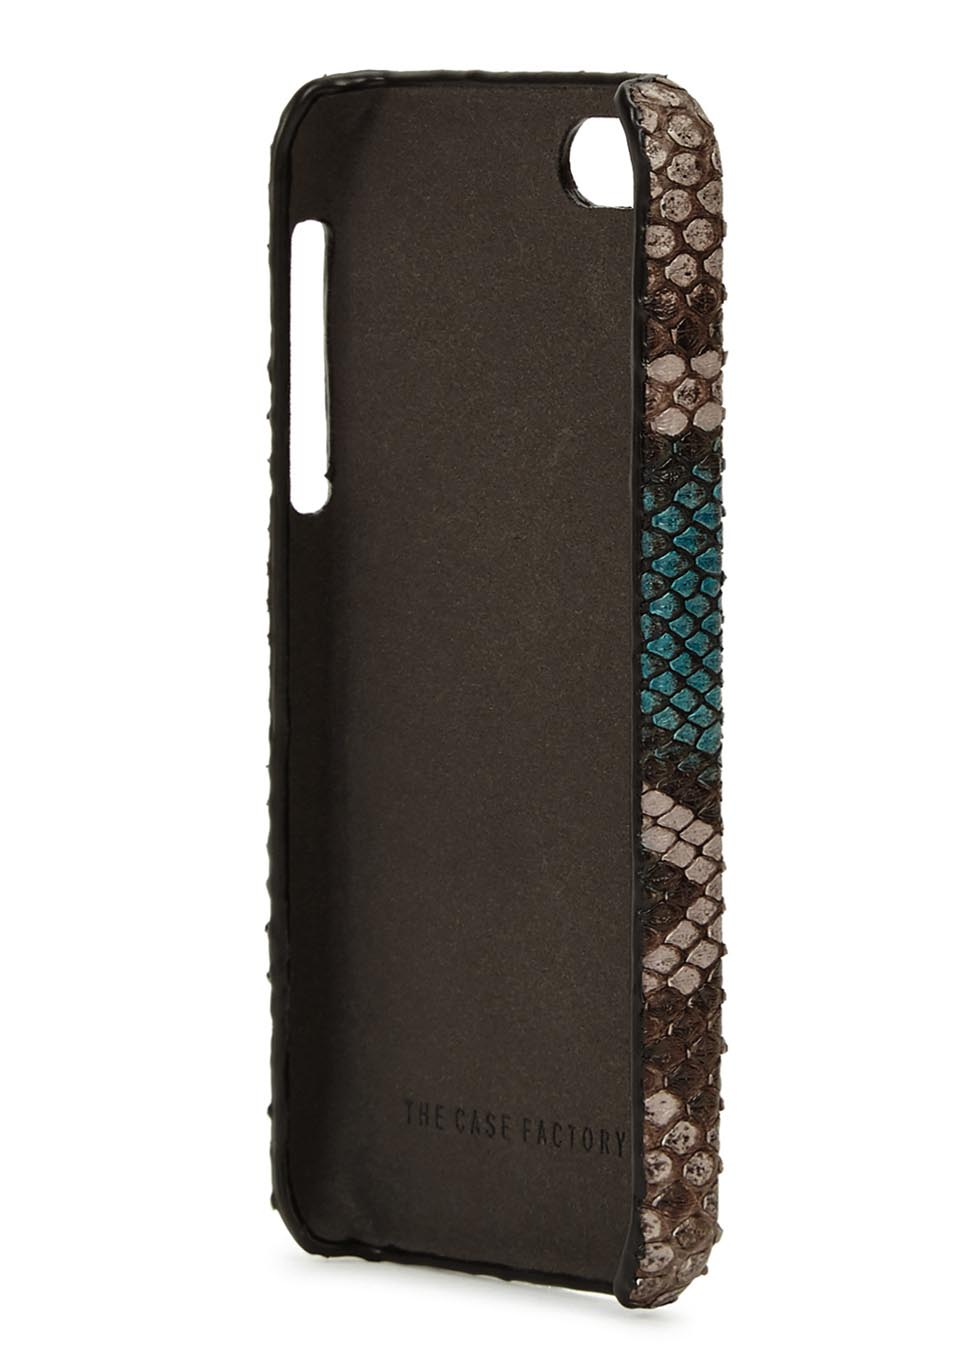 Python-effect leather iPhone 5/5S/SE case - The Case Factory